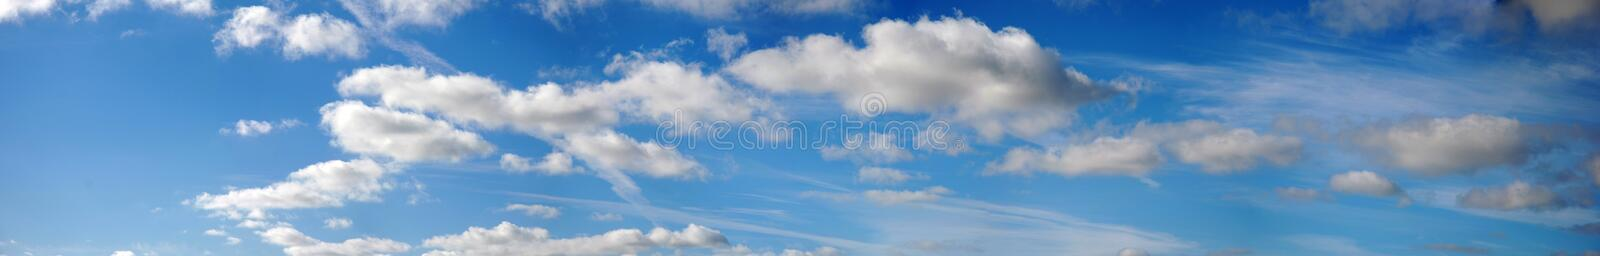 Panoramic clouds and sky stock photo